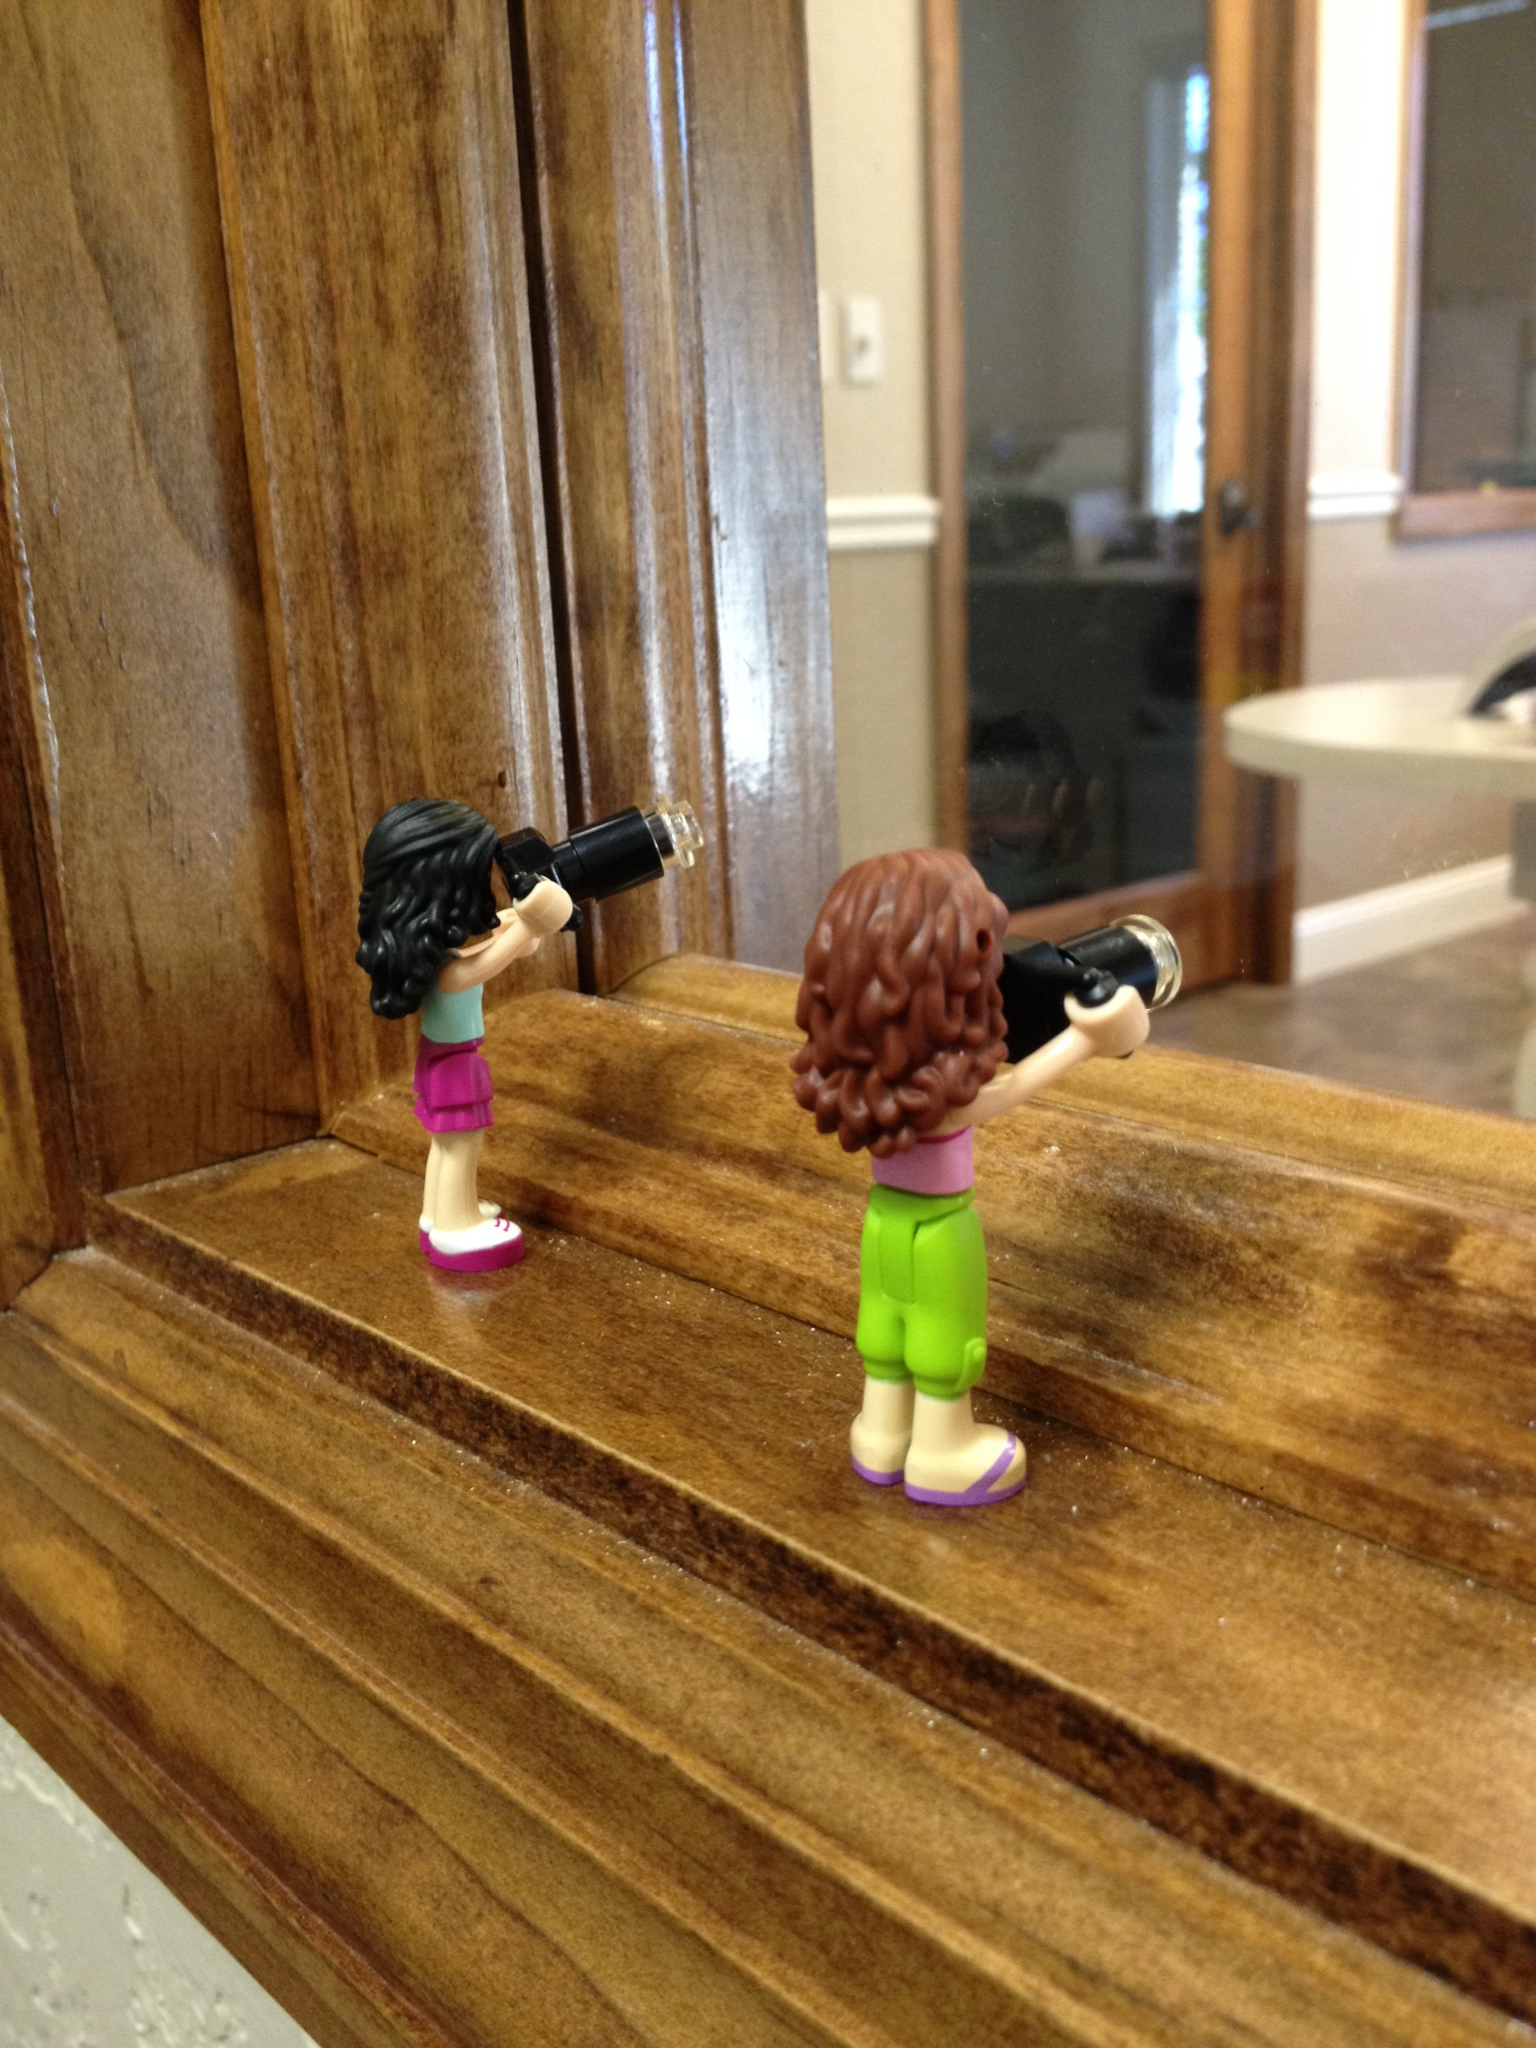 While Tammy and I are preparing for PSW Atlanta, our alter egos are busy capturing the action around the office today.